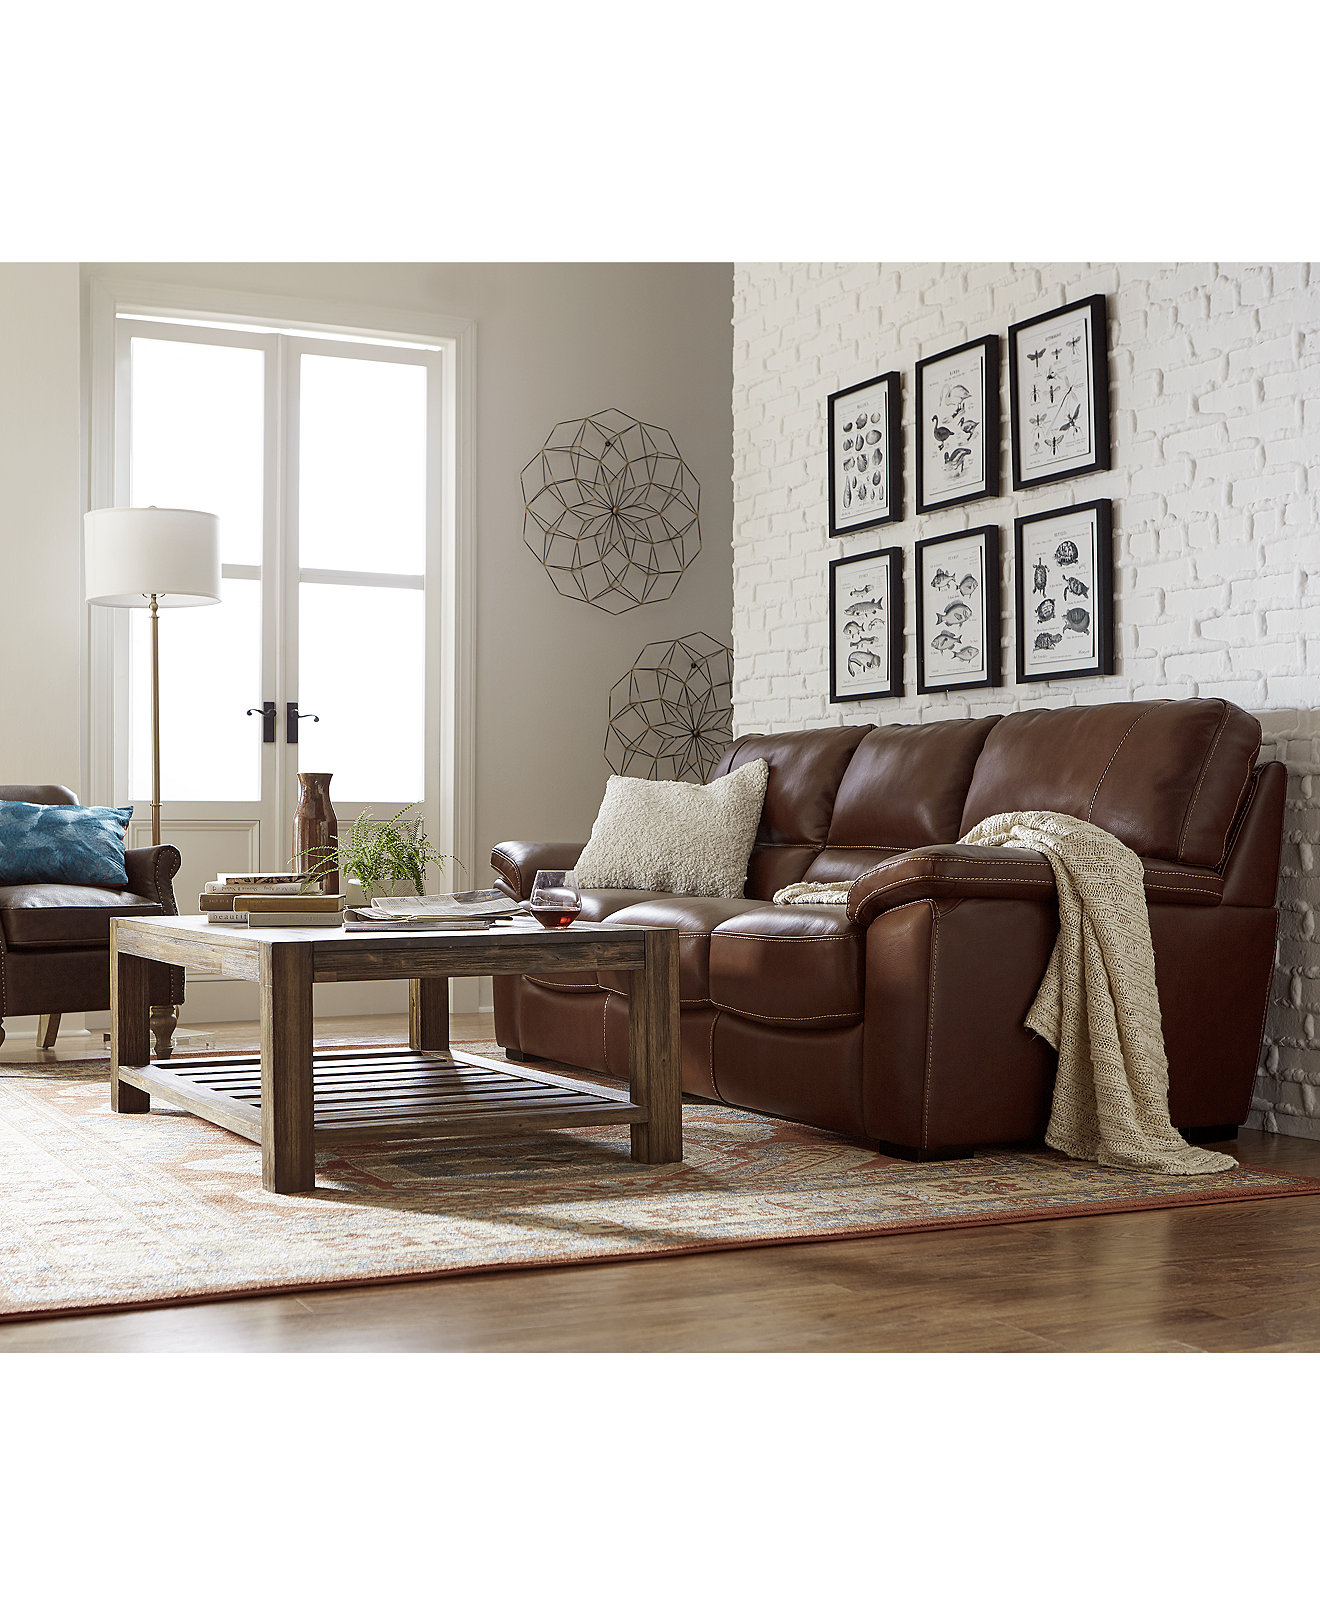 Macys Sofa: Macys Living Room Sets